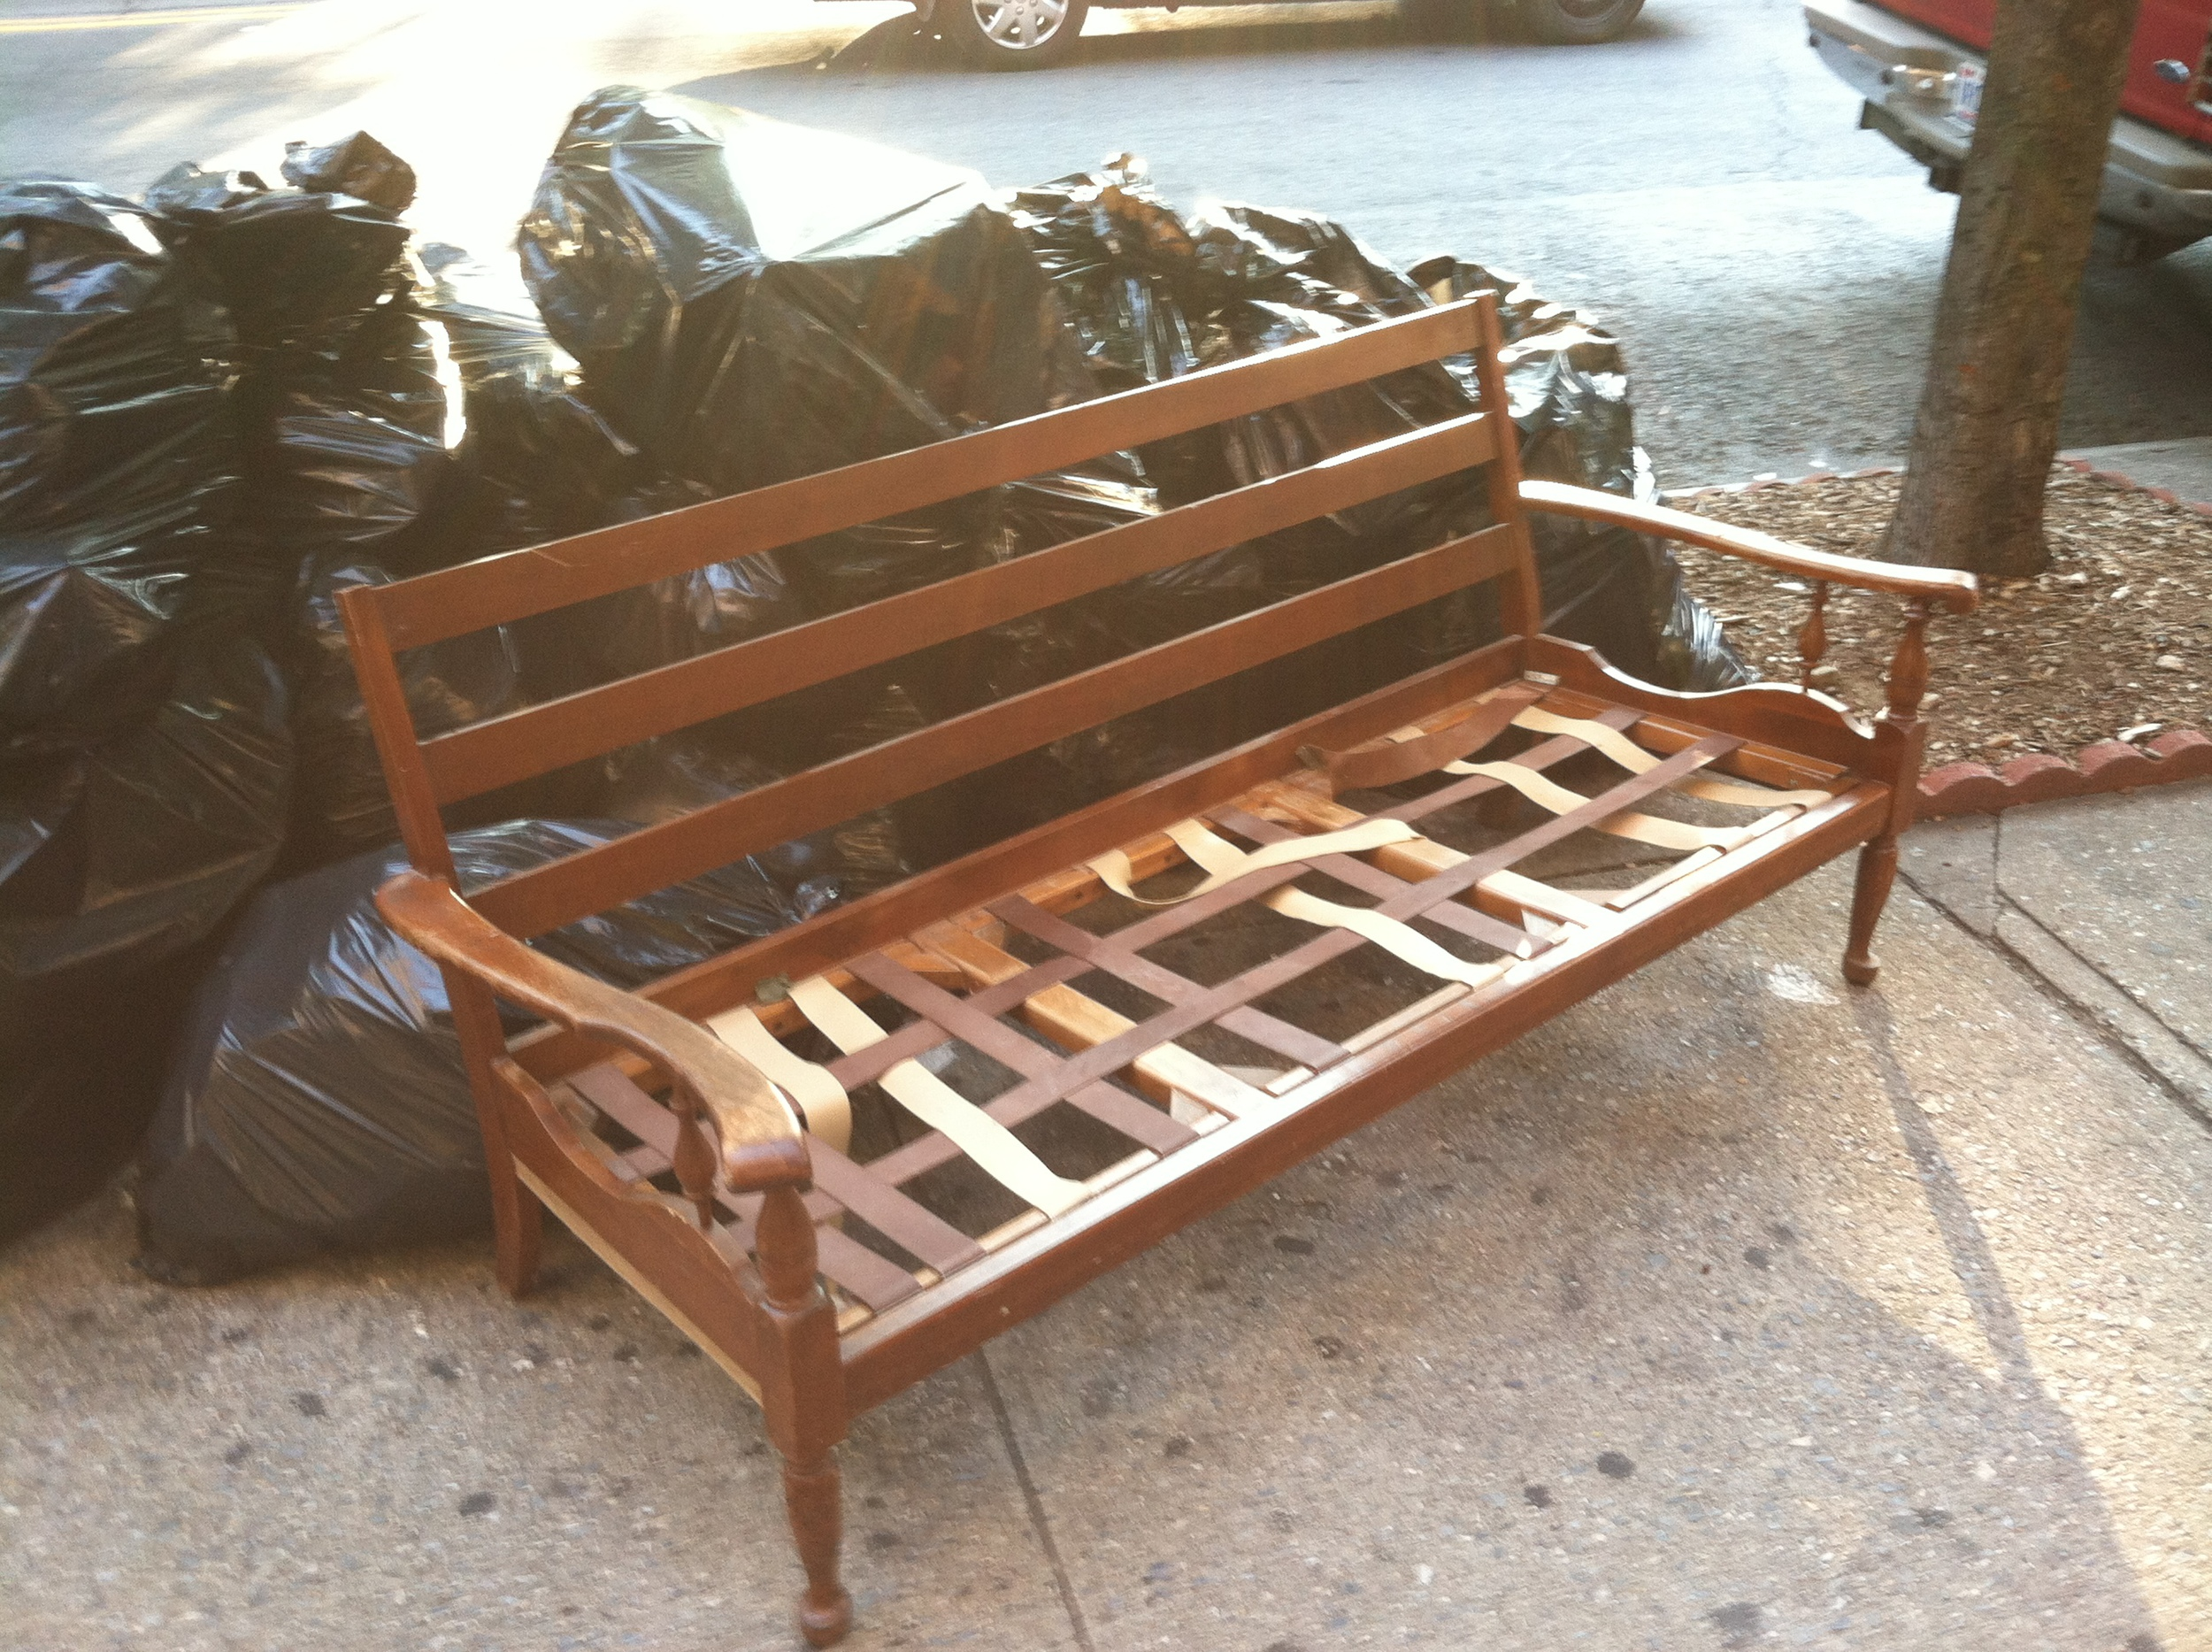 Another pic of the wood framed settee discarded in the garbage